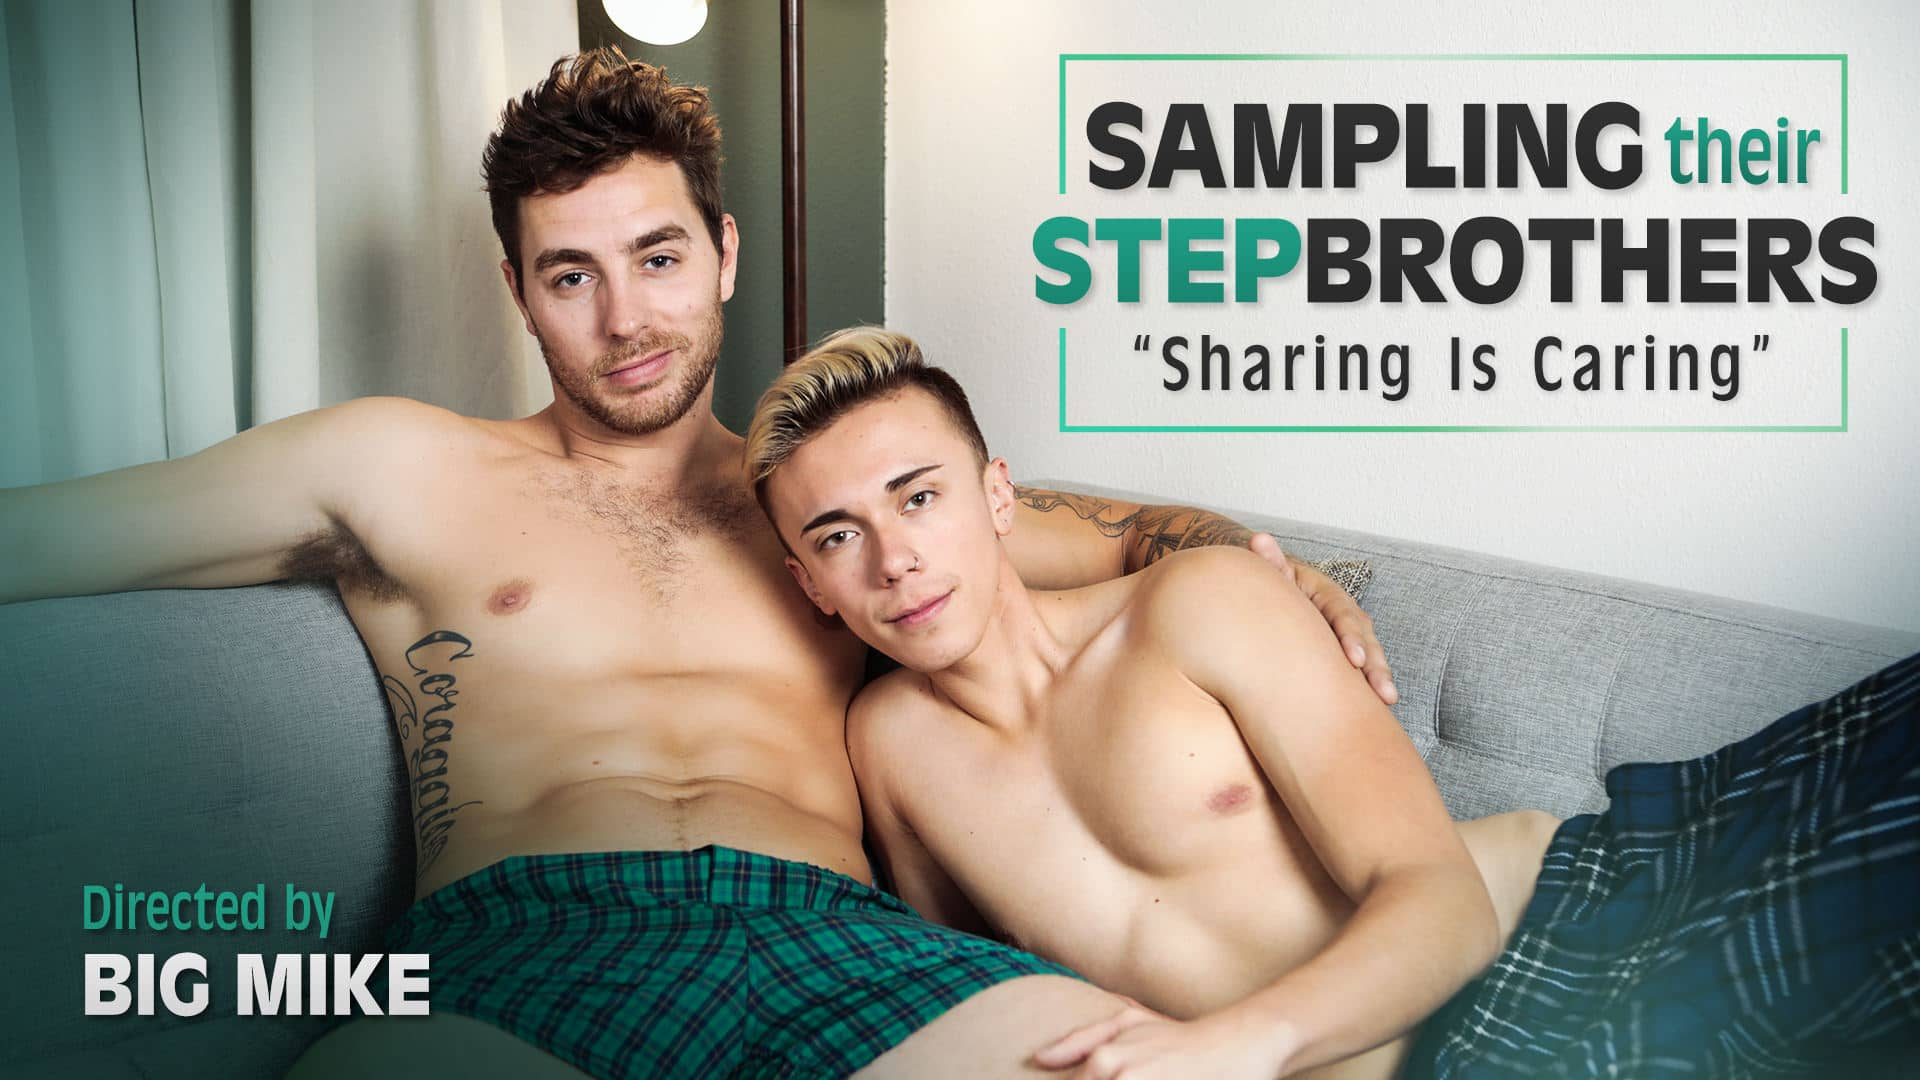 Sampling Their Stepbrothers, Sharing Is Caring – Carter Woods and Carter DelRey